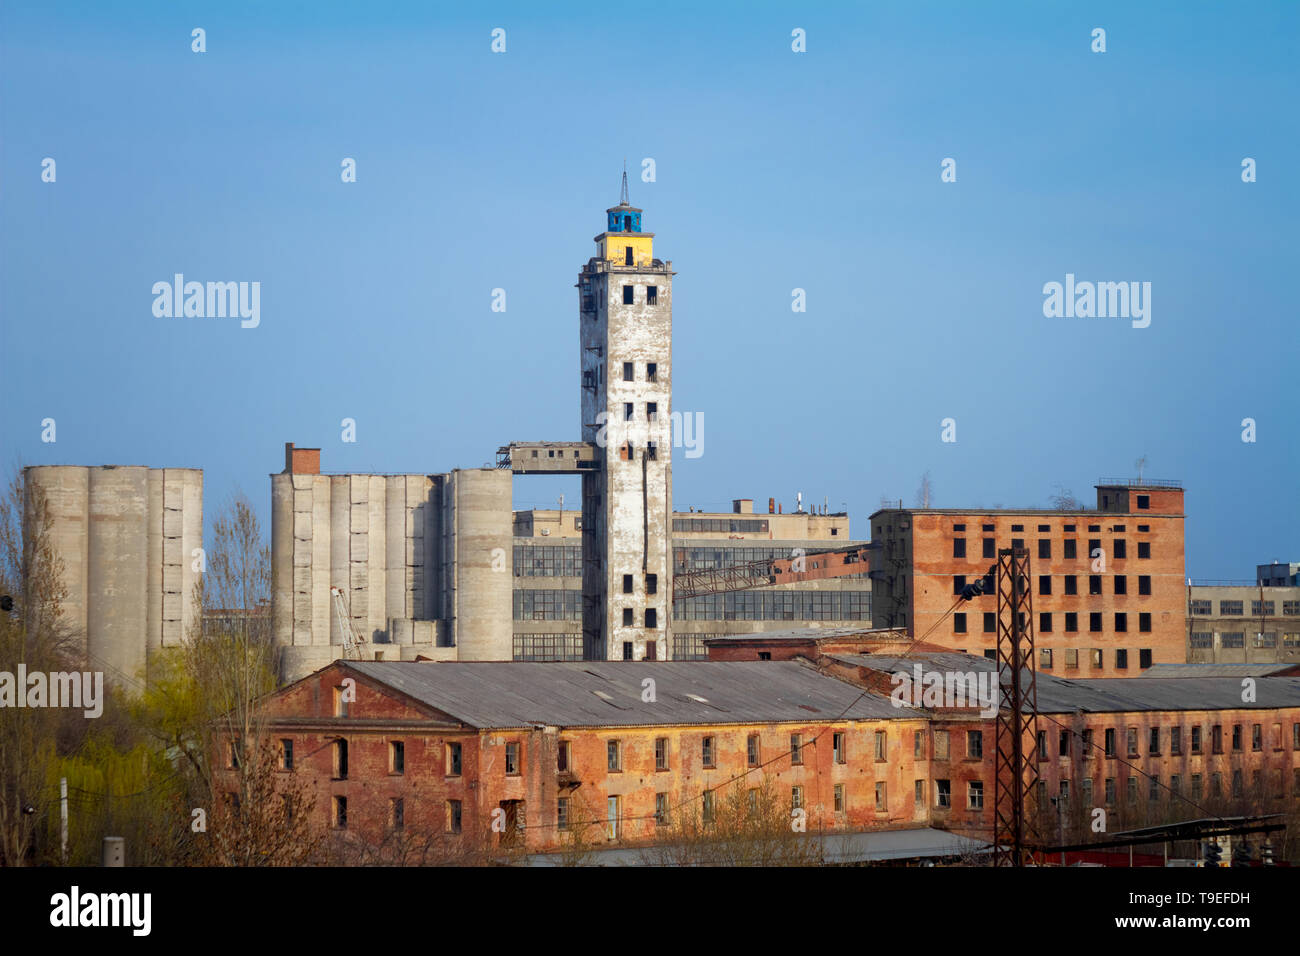 Abandoned damaged old granary against town and blue cloudy sky. - Stock Image